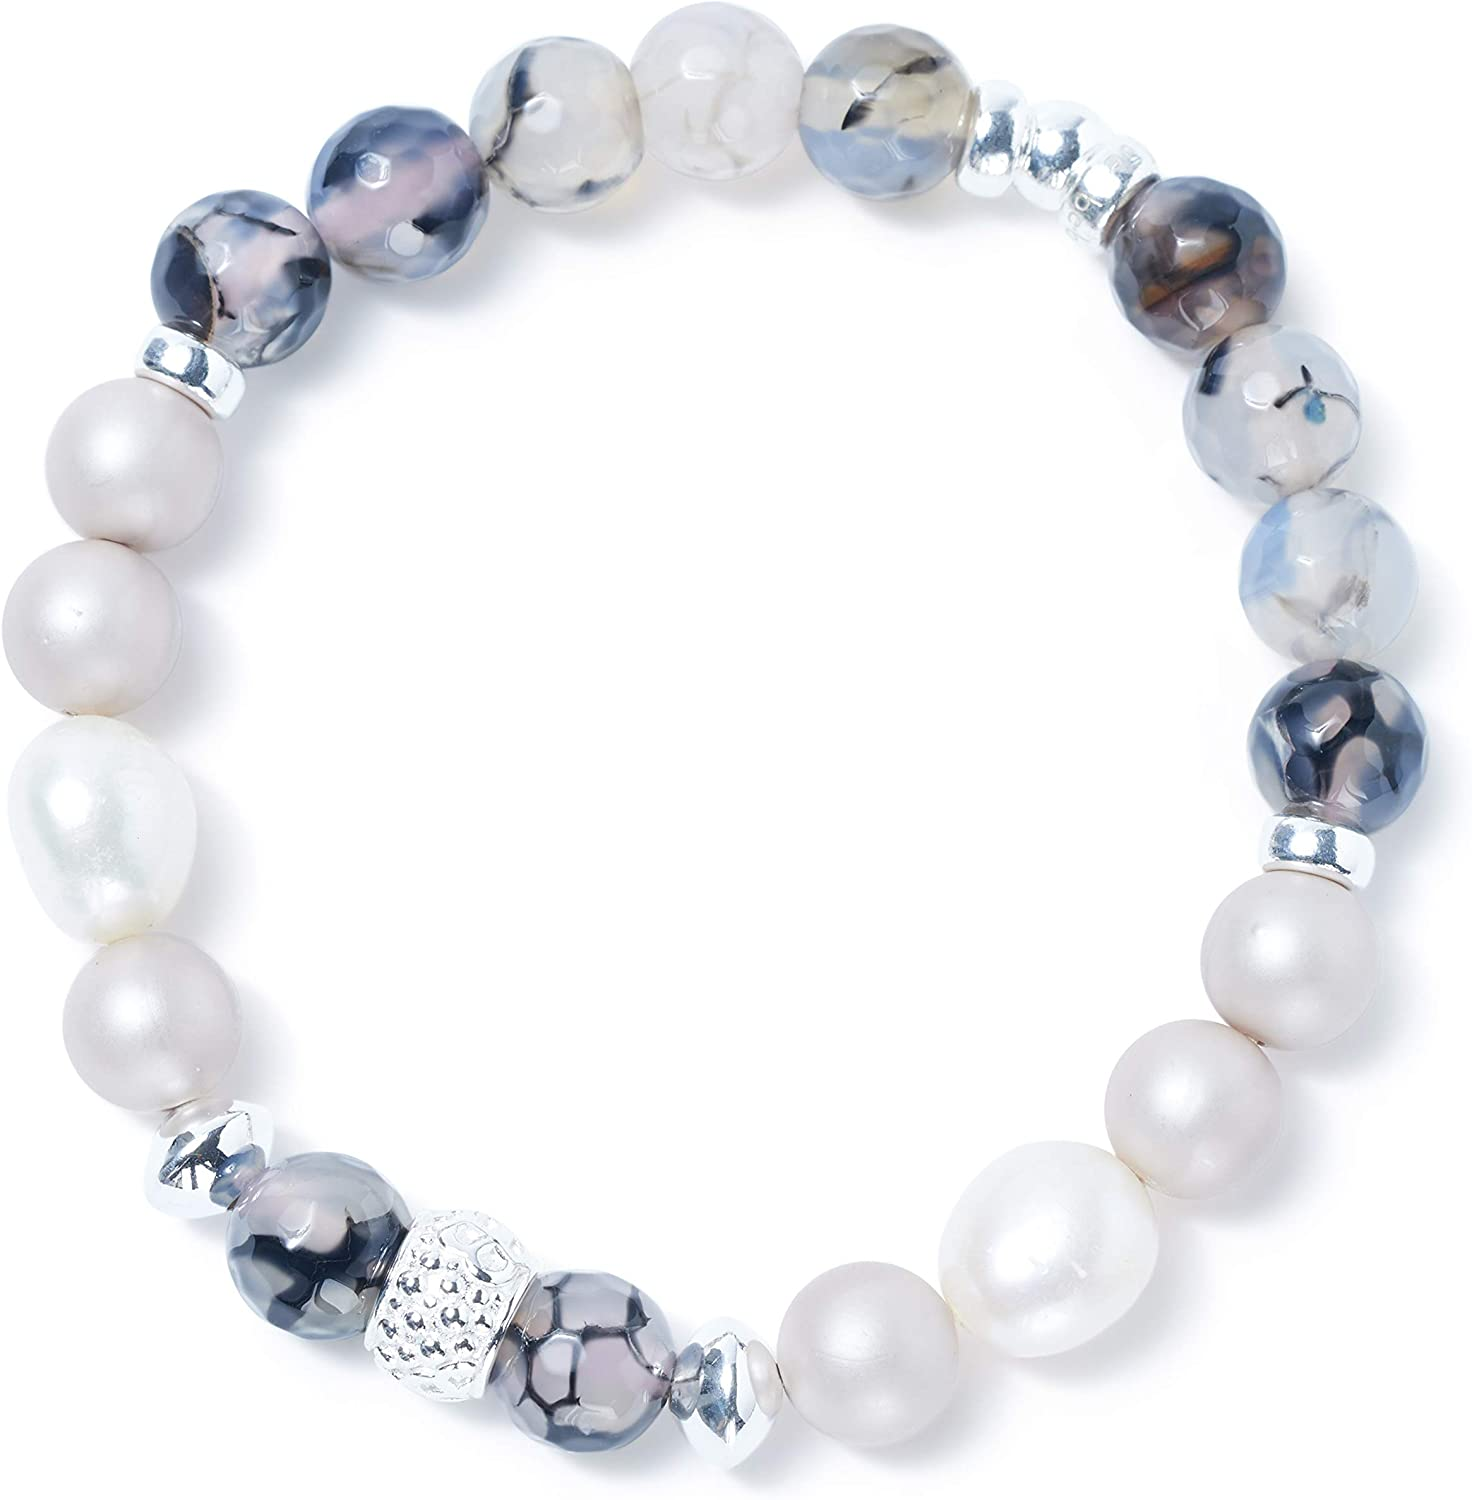 unisex BeBlue Fine Stones Bracelet Houston Mall 8 mm and S Freshwater Pearls with